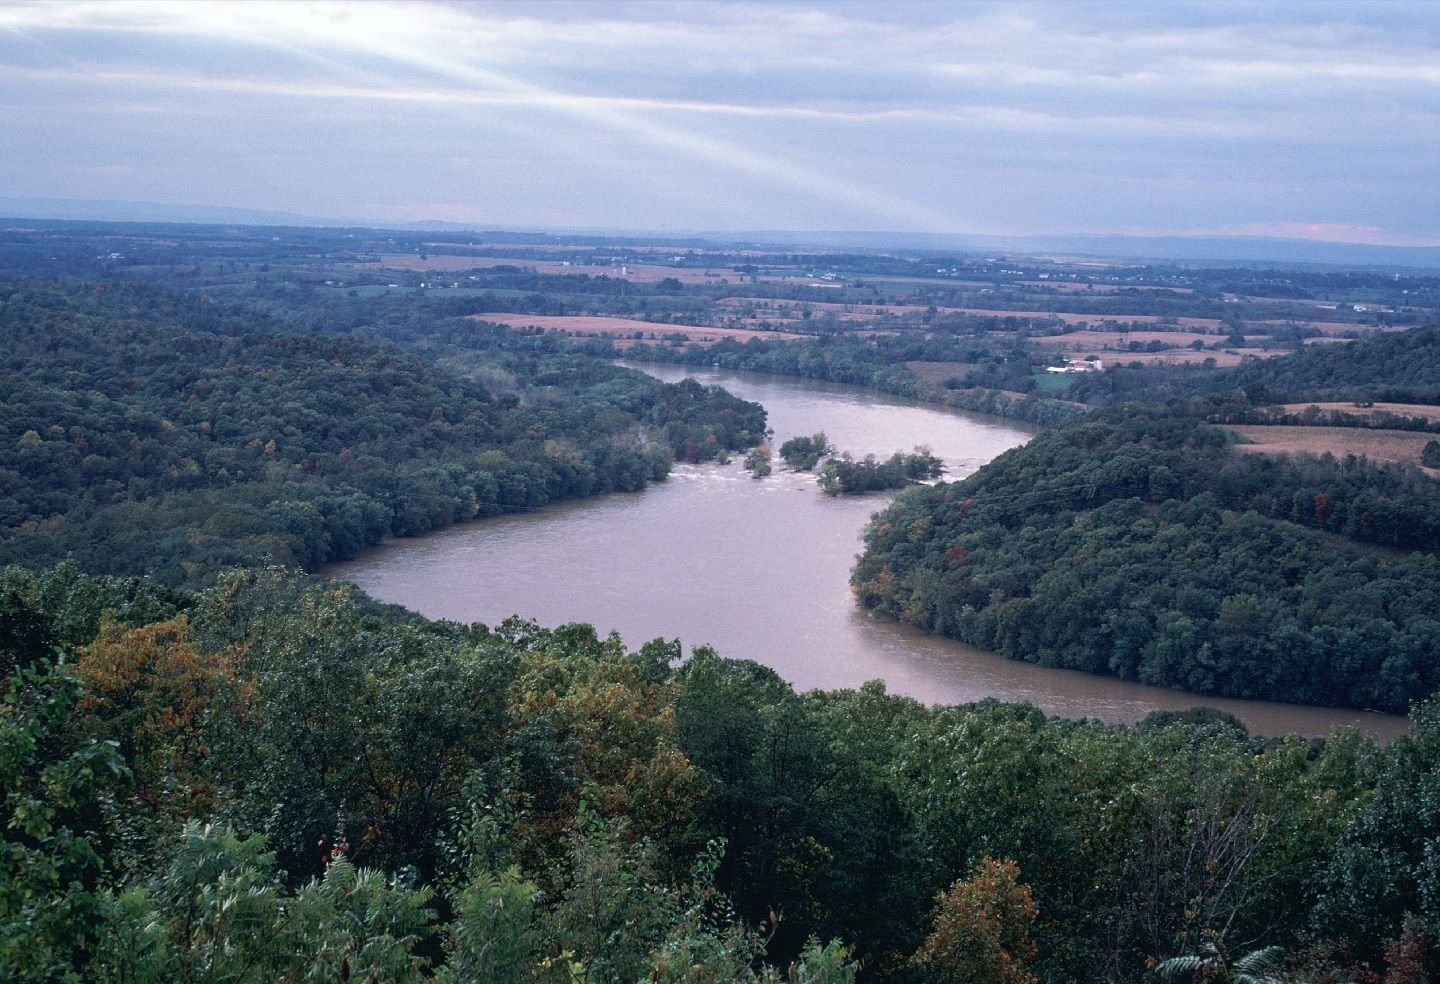 Aerial view of the Ohio River between Ohio and West Virginia